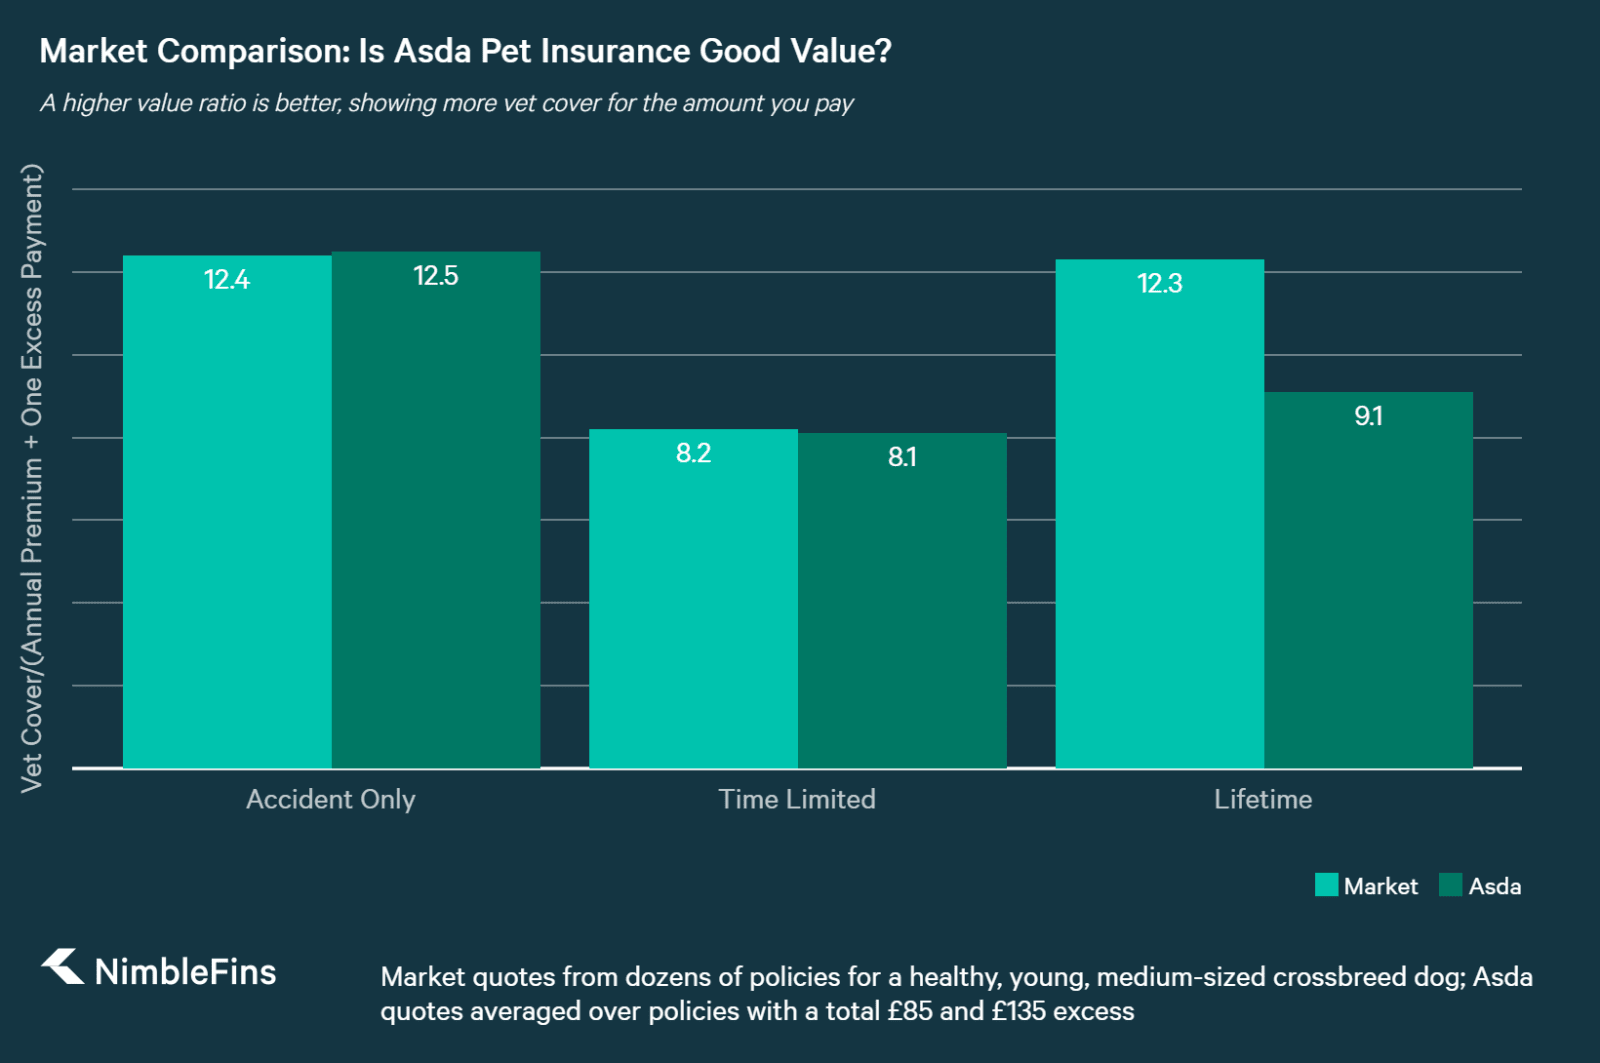 chart comparing pet insurance quotes by policy type for Asda vs the market average